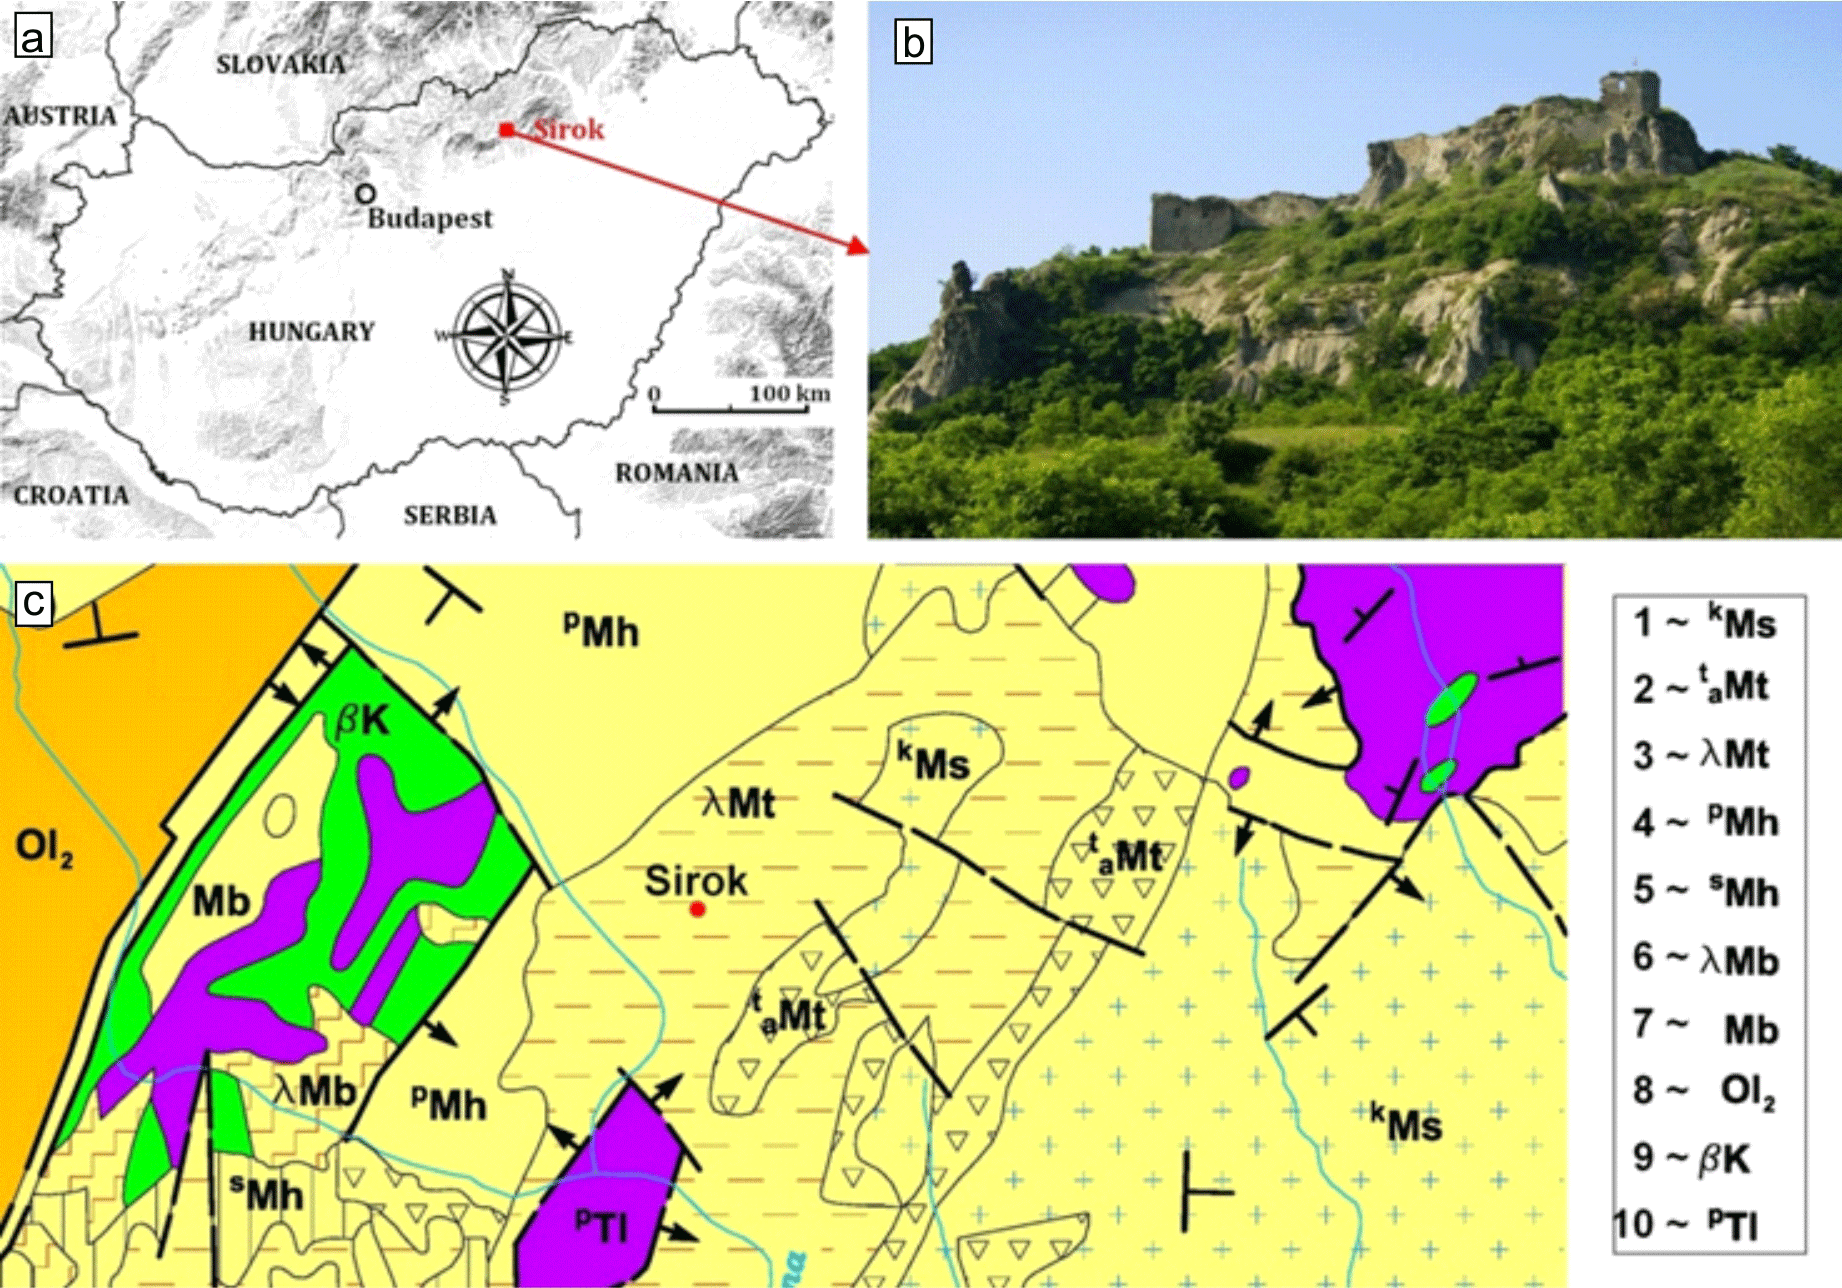 NHESS - Slope stability and rockfall assessment of volcanic tuffs